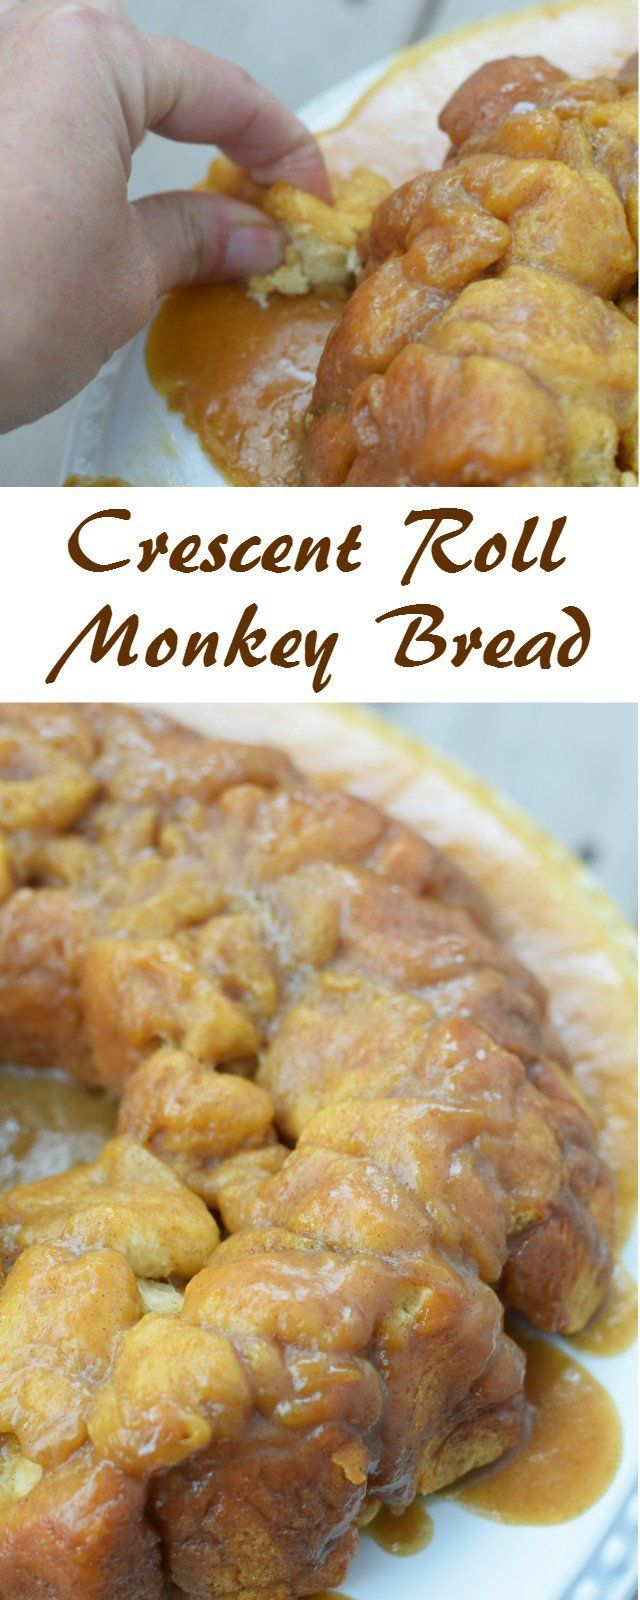 Delicious and easy crescent roll monkey bread recipe. This comes together quickly for a special occasion breakfast for company or a fun weekend treat ...